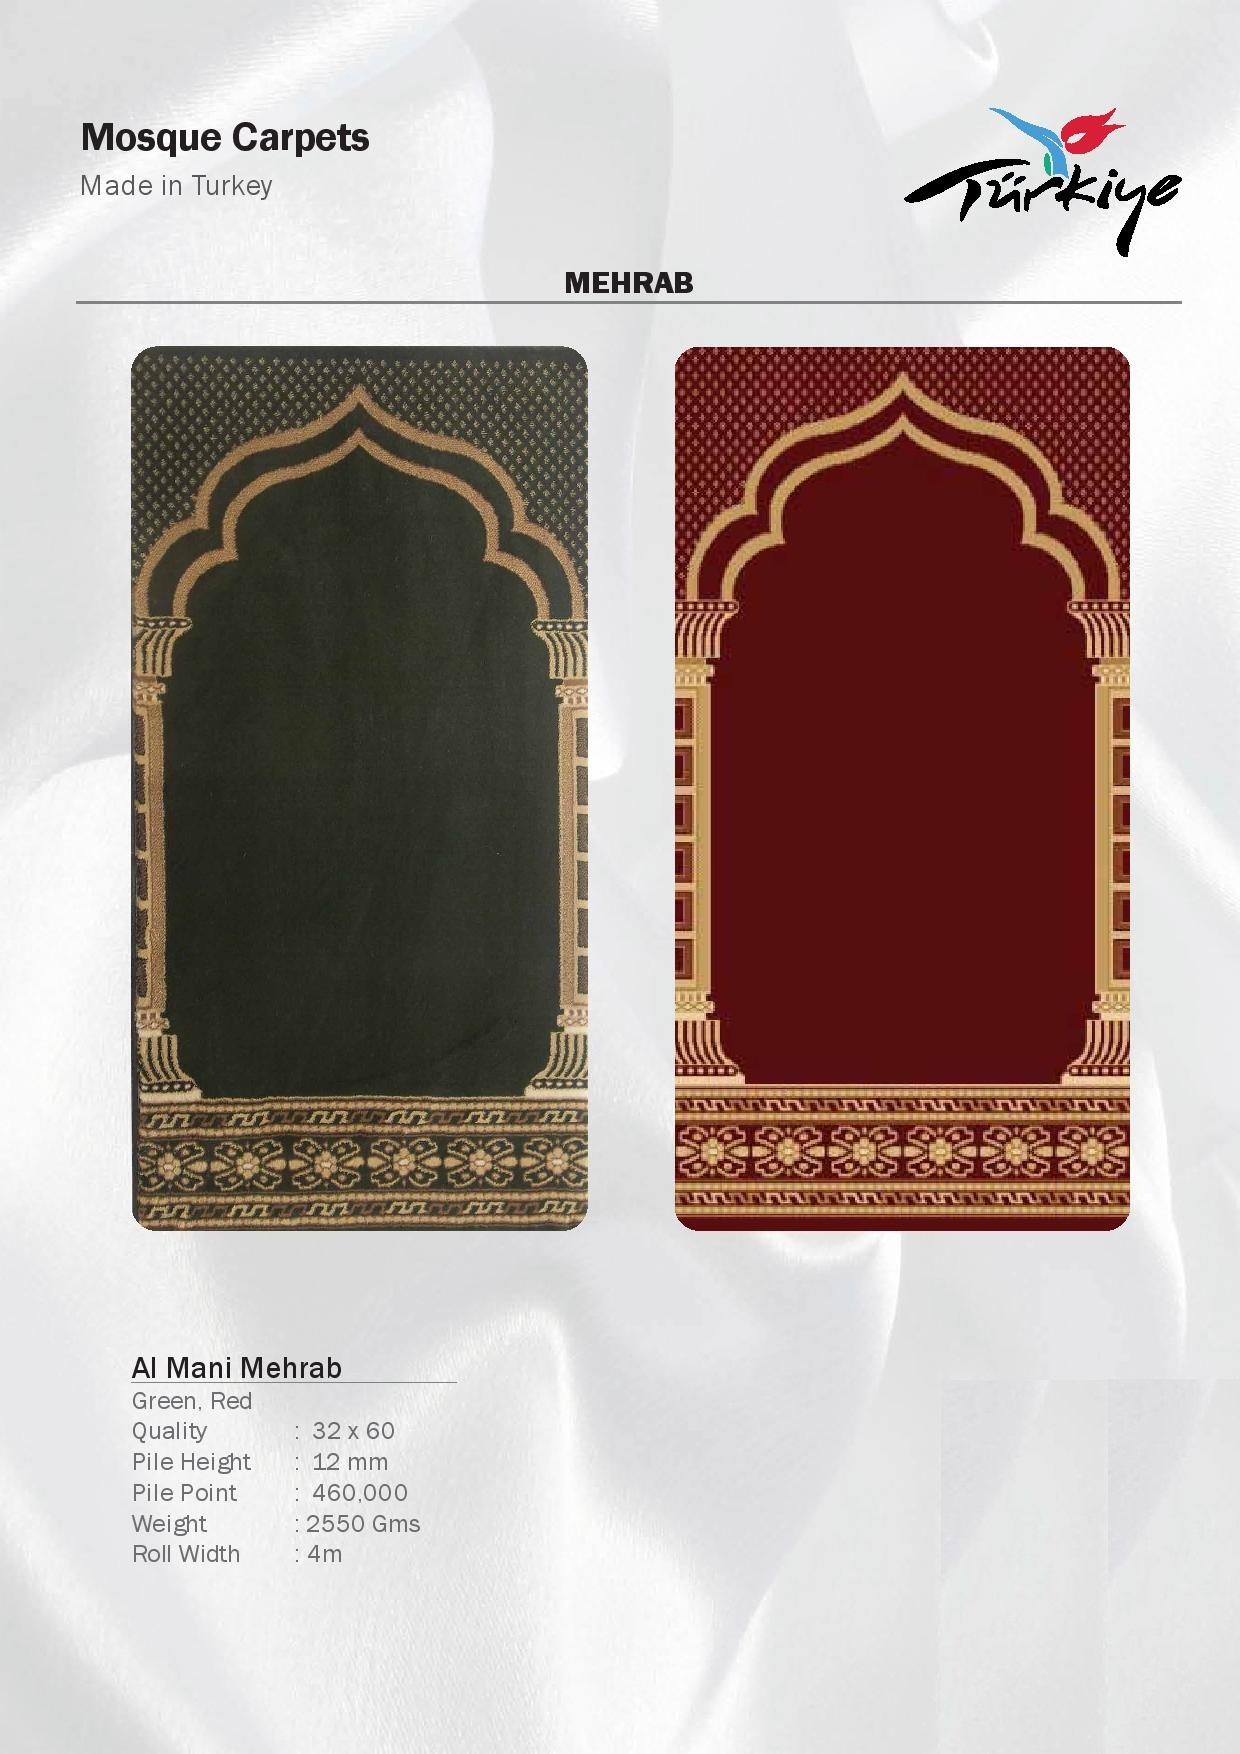 Mosque Carpet Collection Offered By Carpets Dubai.ae ...